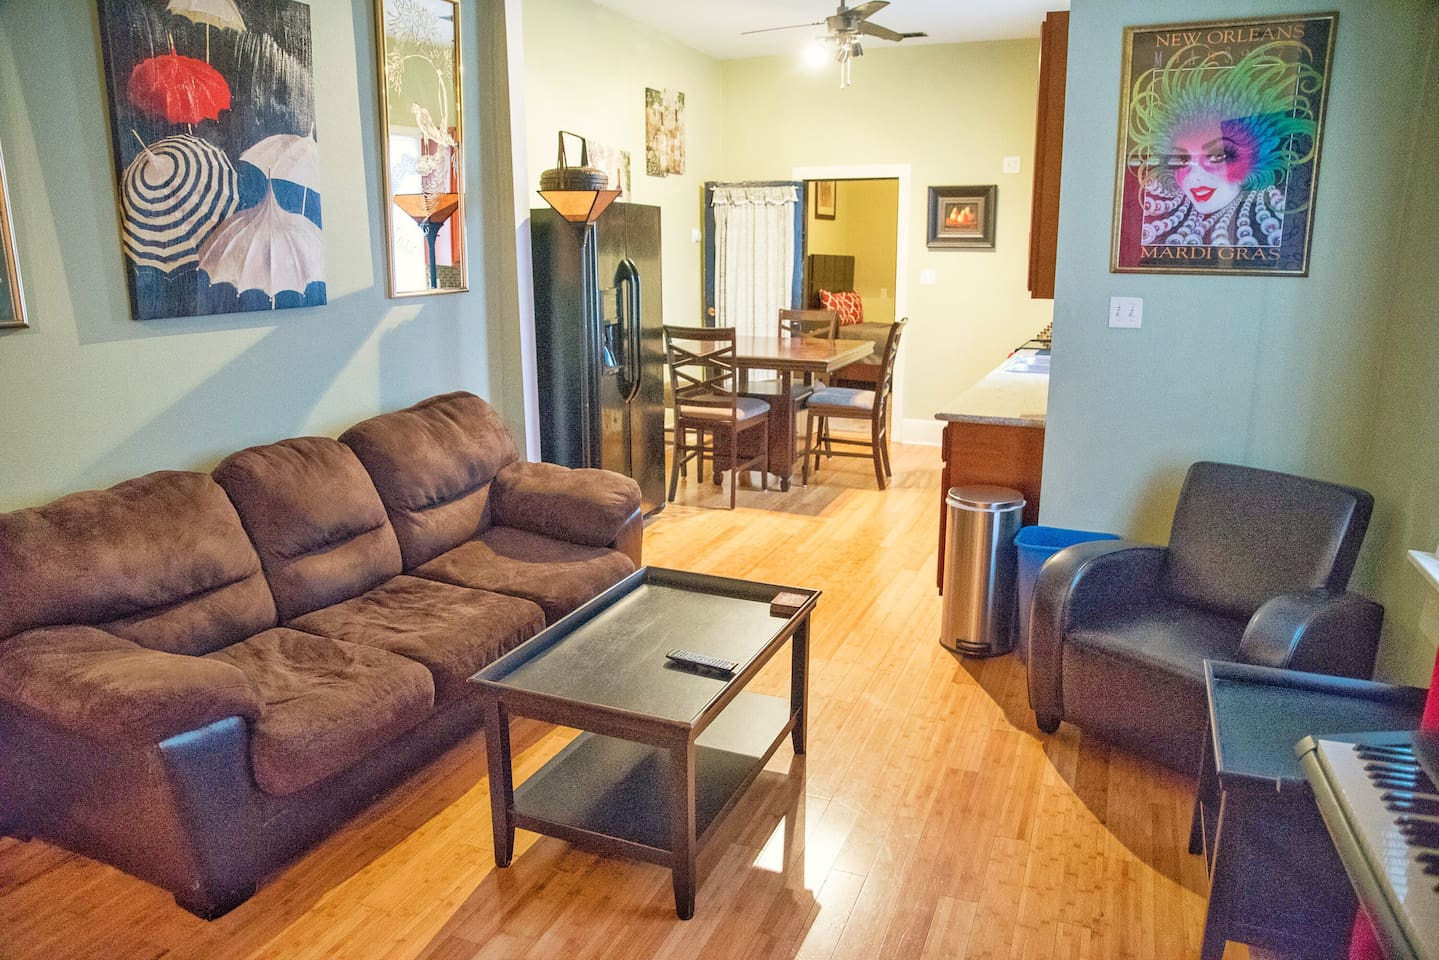 Living room with pullout sofa. Home located in the heart of historic New Orleans